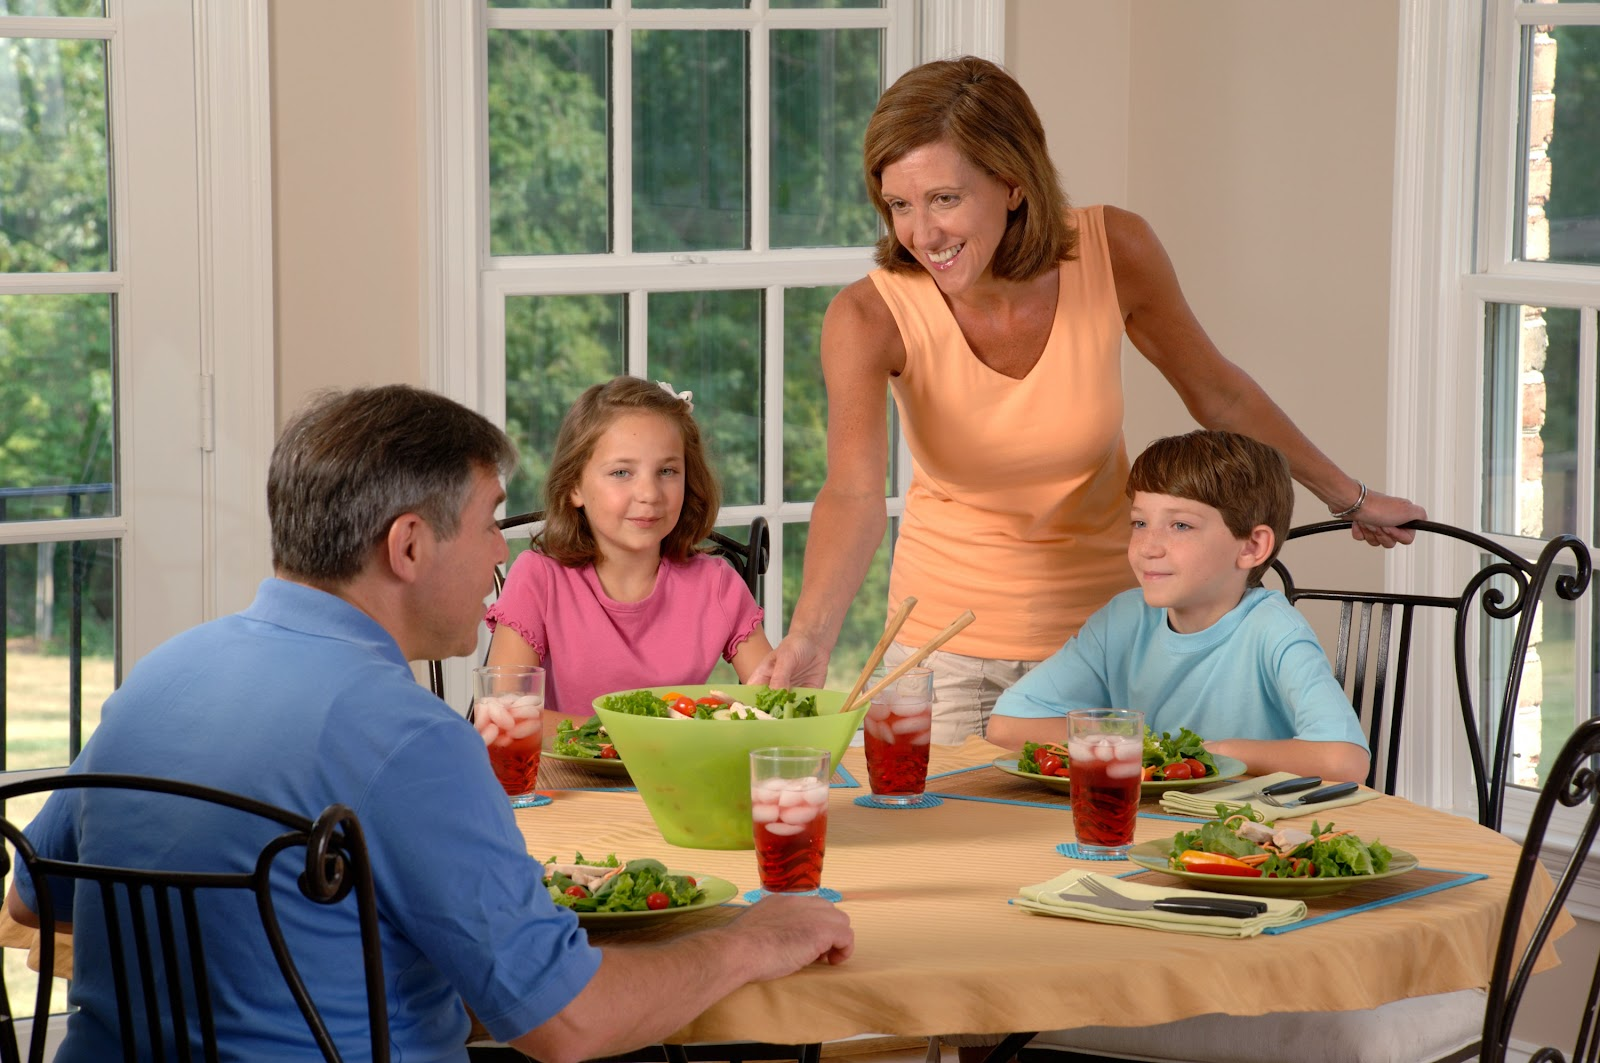 Family_eating_lunch_(1).jpg